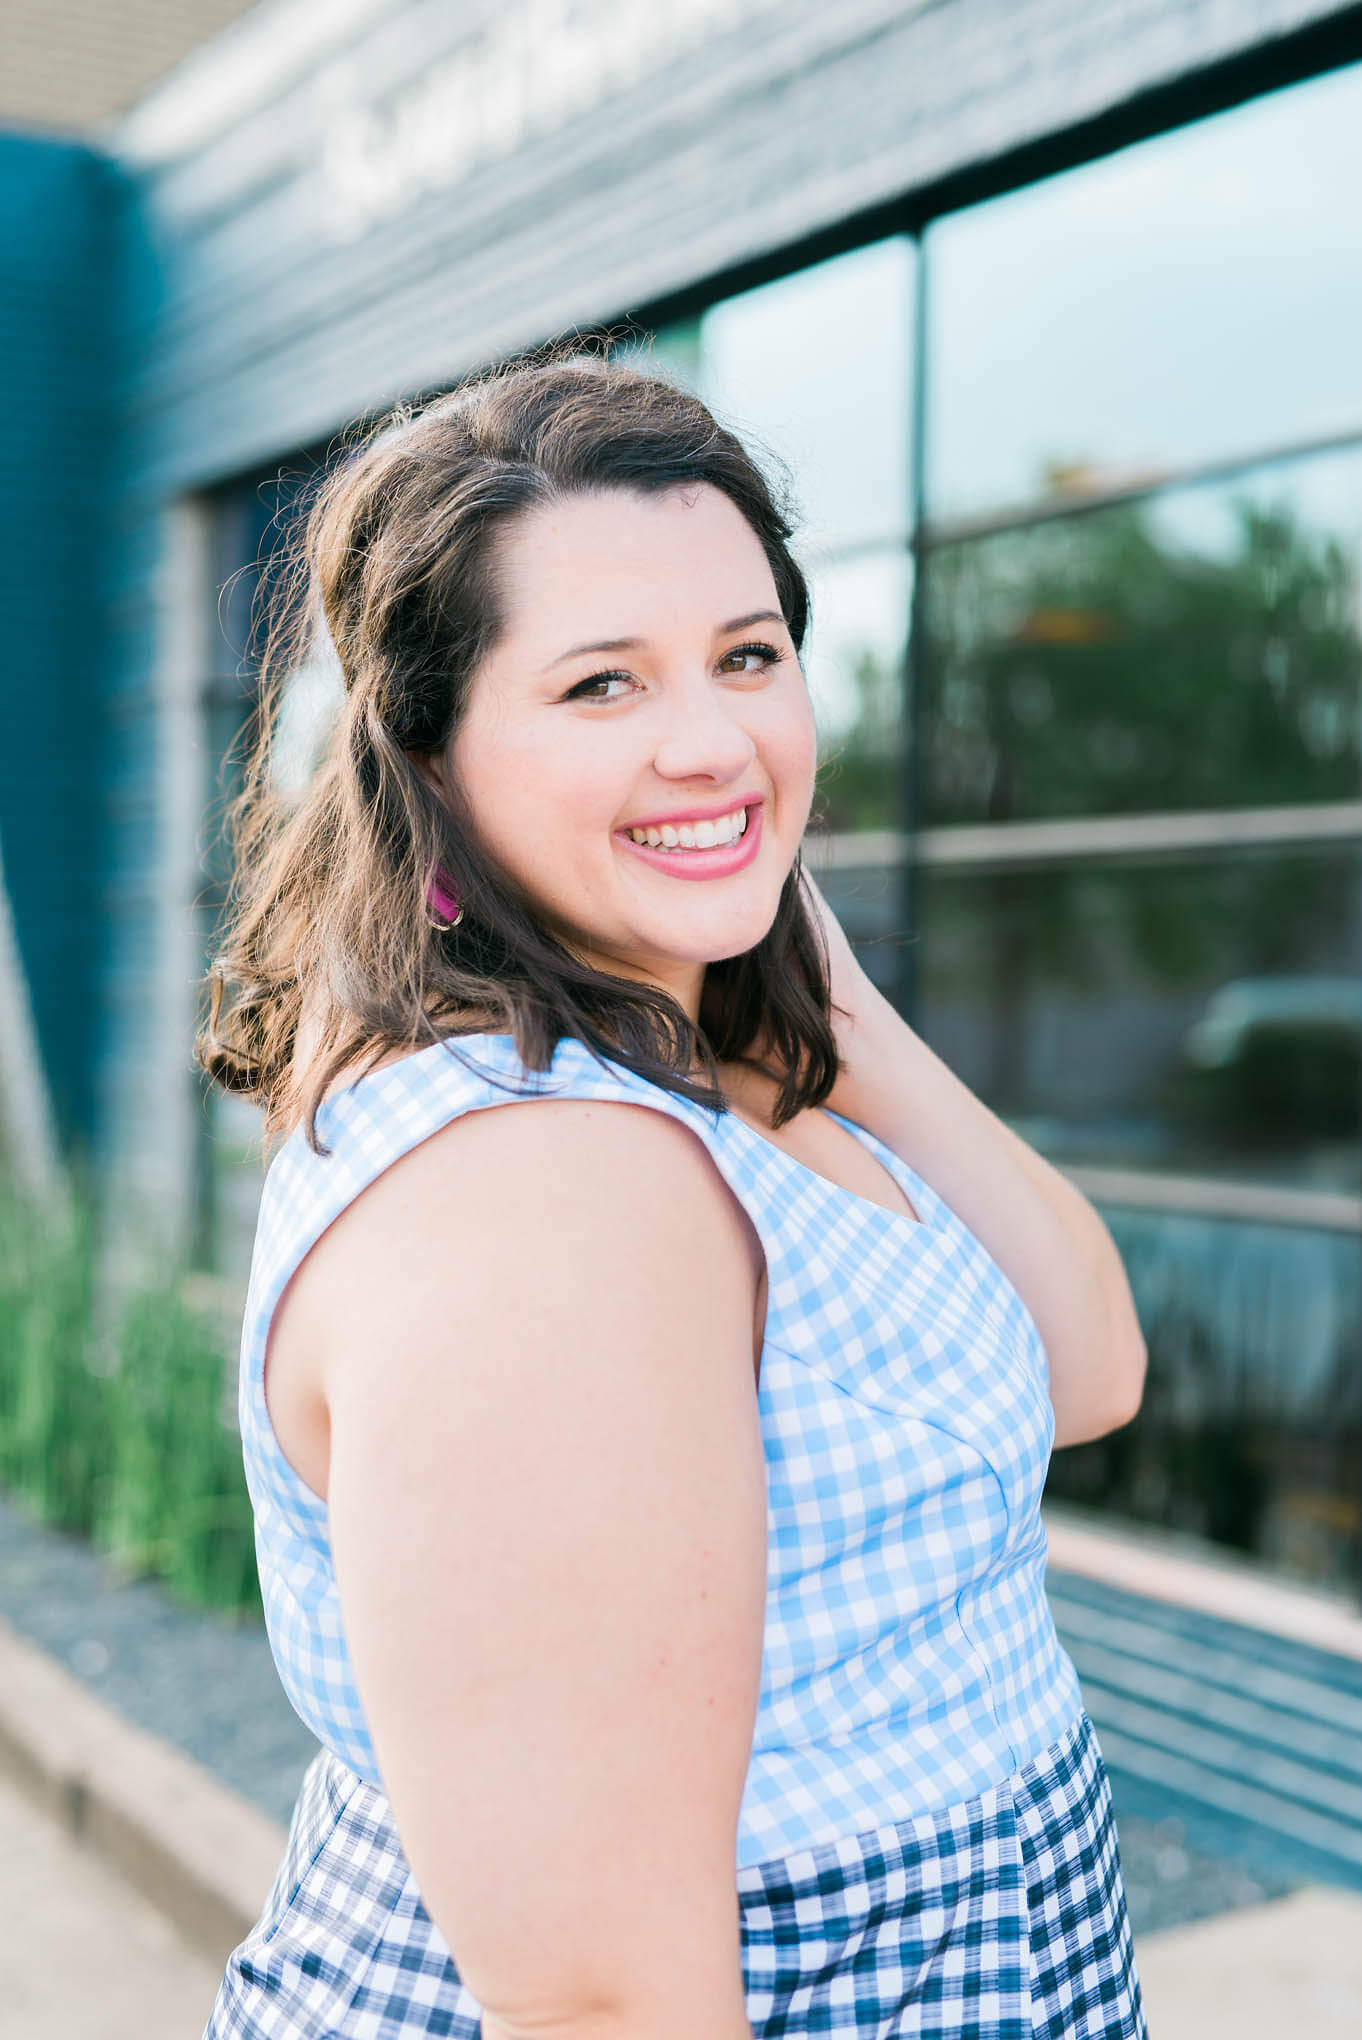 Sharing why I've been absent from this blog for a bit and why having confidence is a journey - Emily Bastedo from Something Gold, Something Blue